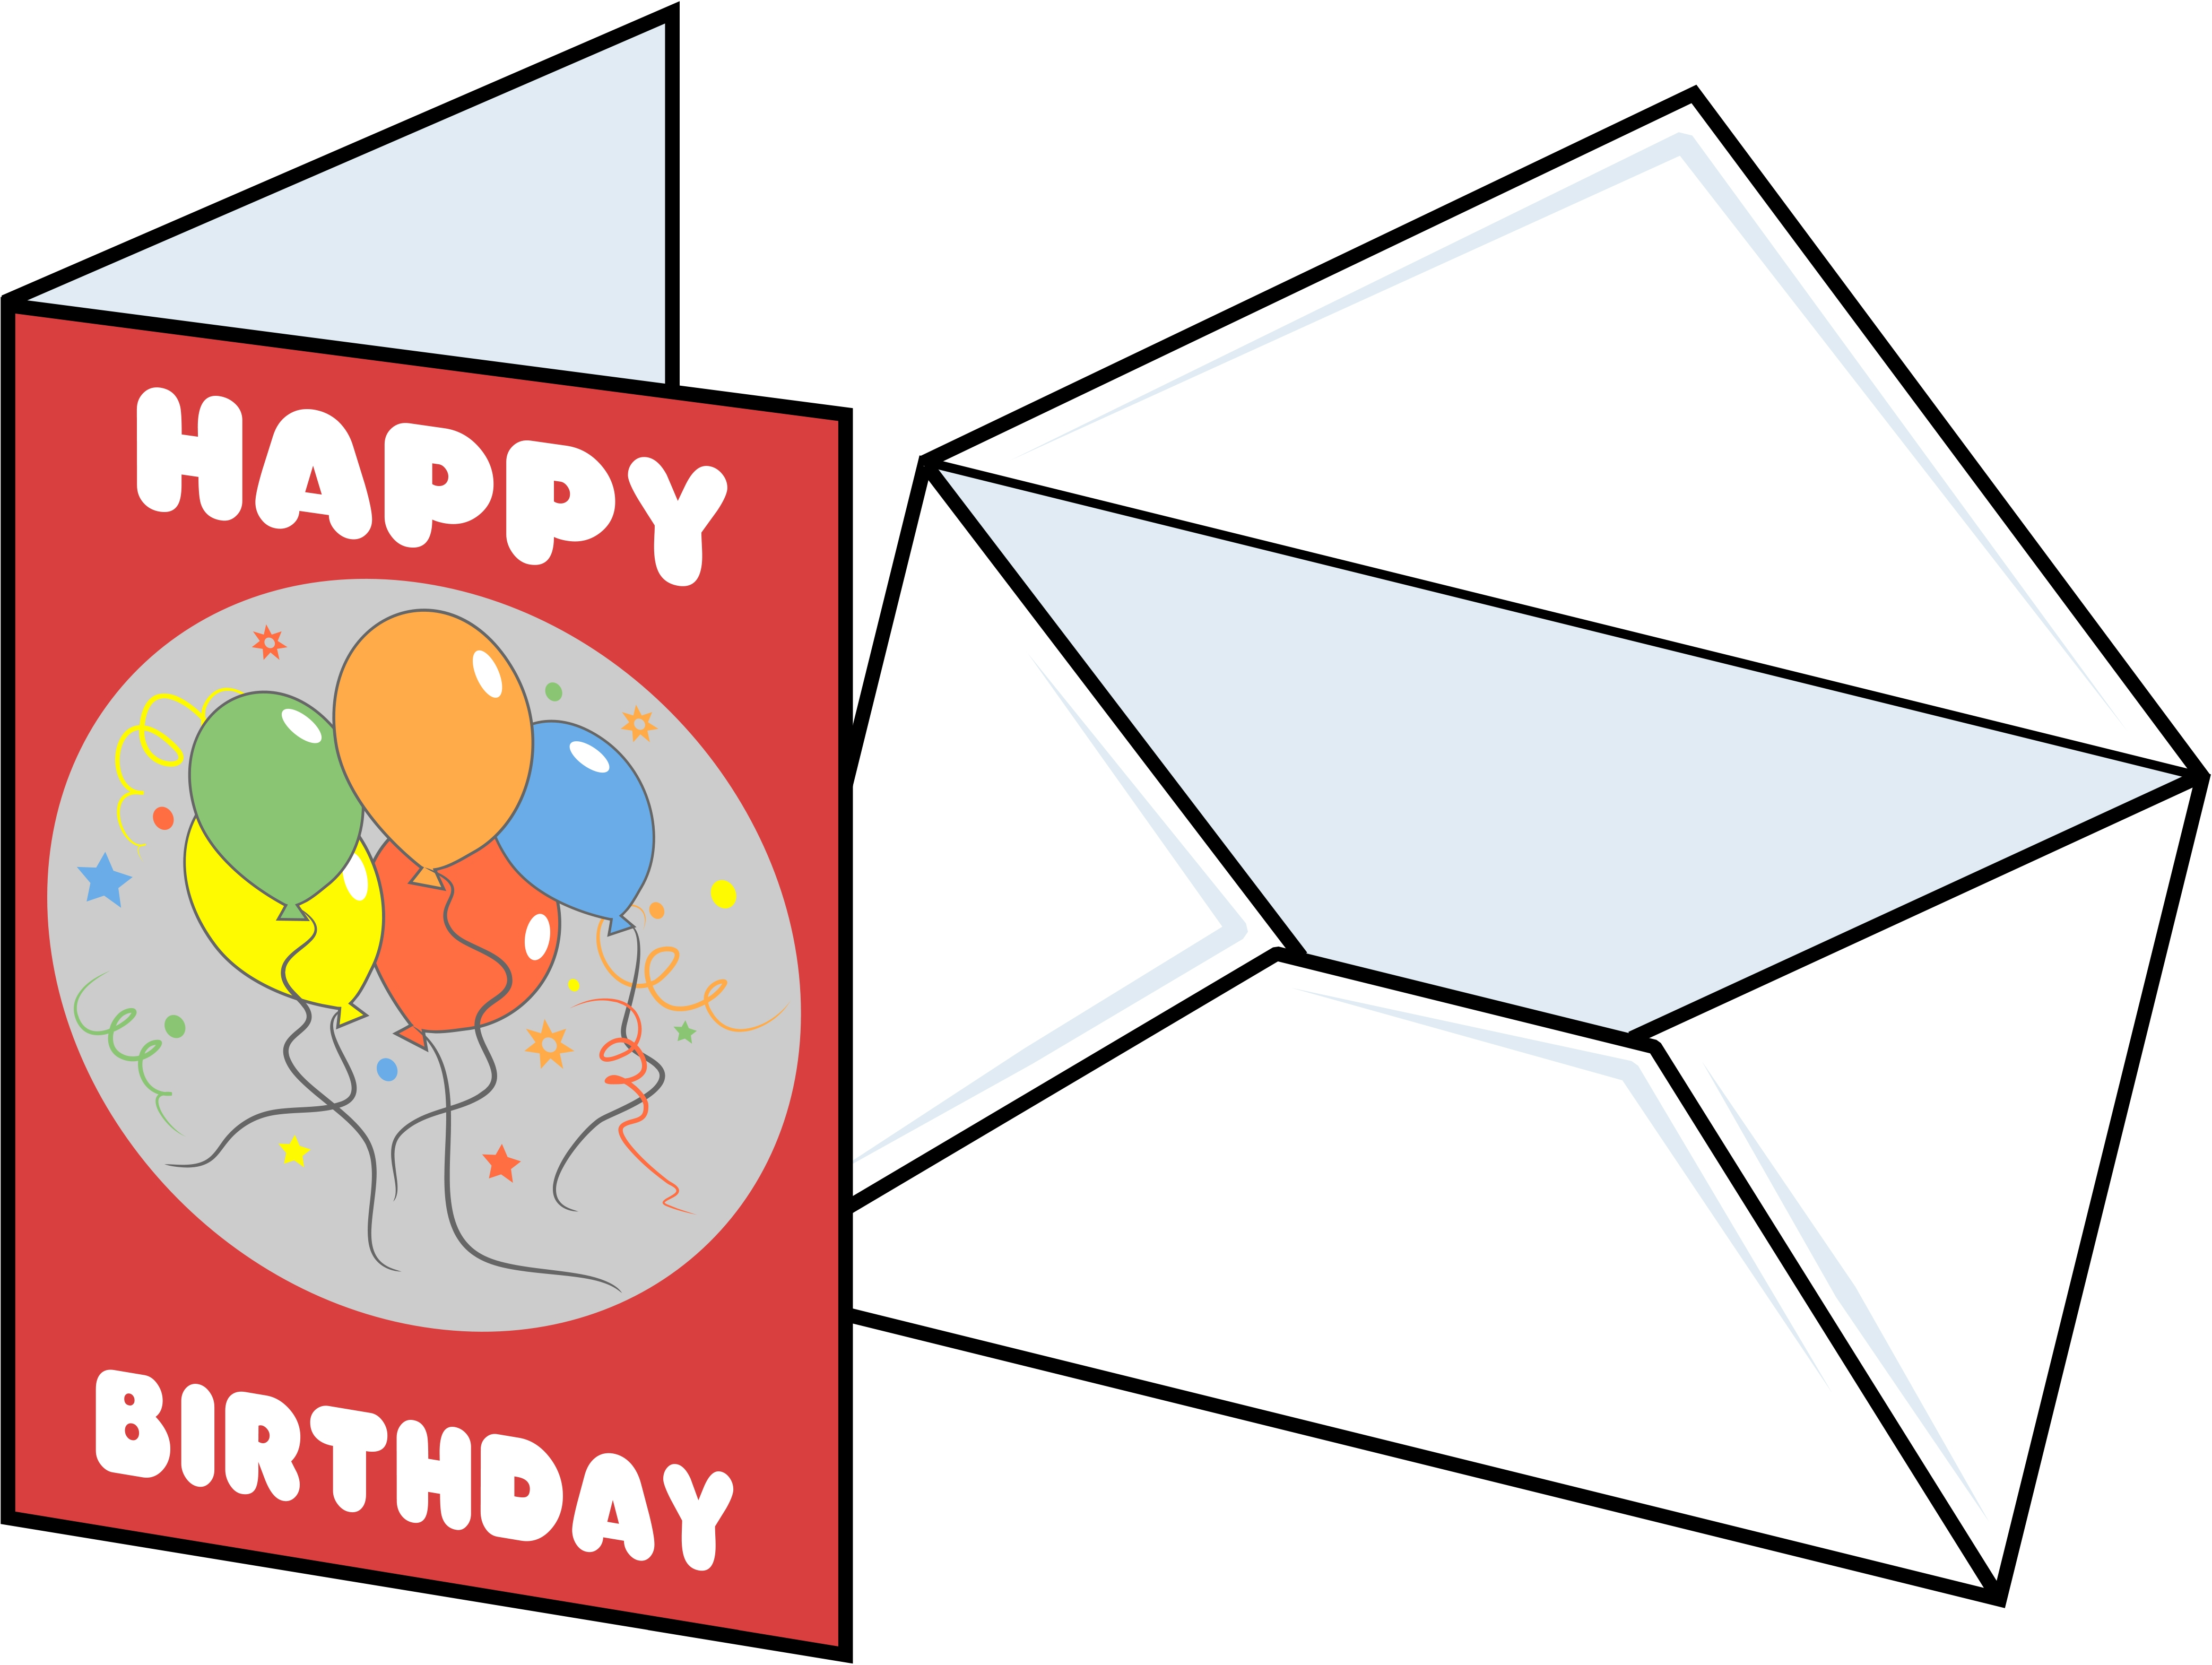 Happy birthday card clipart svg library library Clip Art Blank Cards Clipart - Clip Art Library svg library library